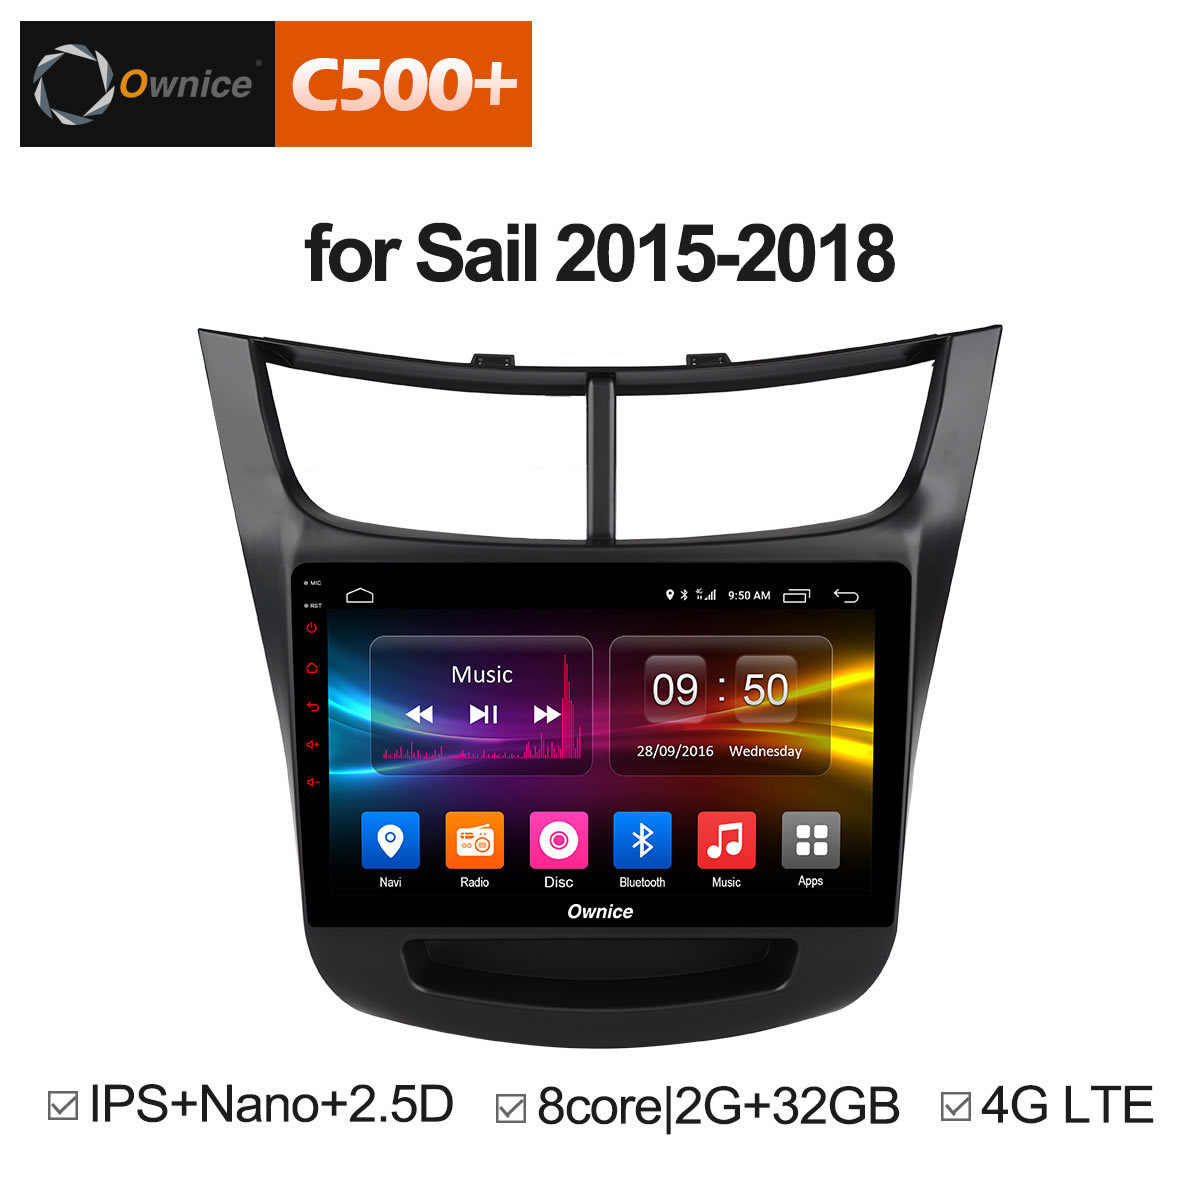 Ownice 9 inch octa core OEM frame car PC Android 8.1 2GB+32GB GPS radio navigation for Chevrolet Sail 2015 2016 2017 2018 BT 4G